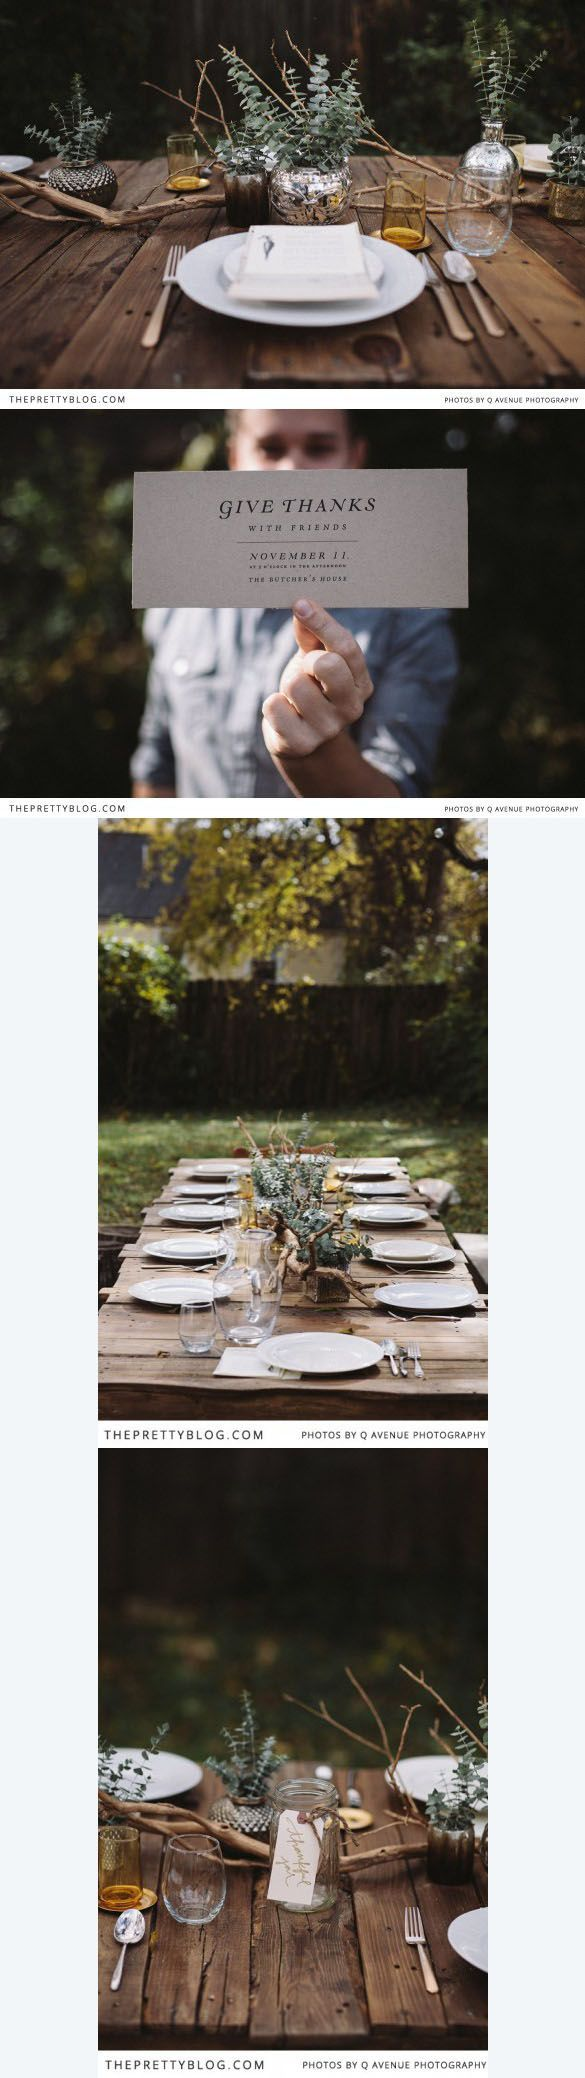 Baby It's Cold Outside - Entertaining. Rustic Thanksgiving DecorOutdoor ThanksgivingThanksgiving  Dinner ...